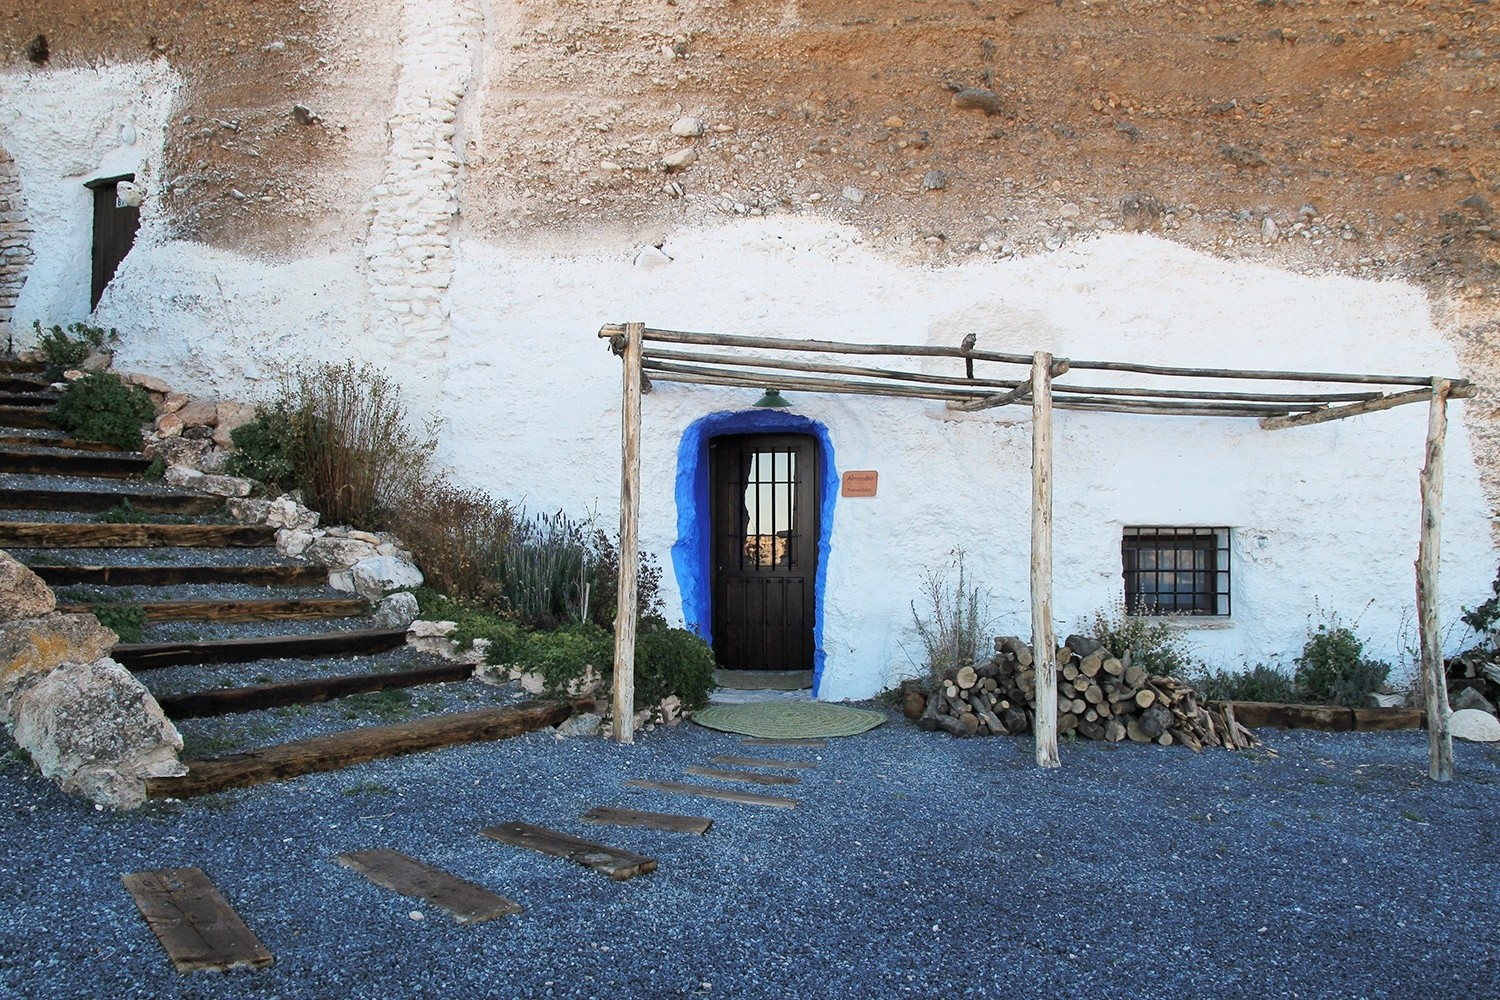 Front view of the cave house